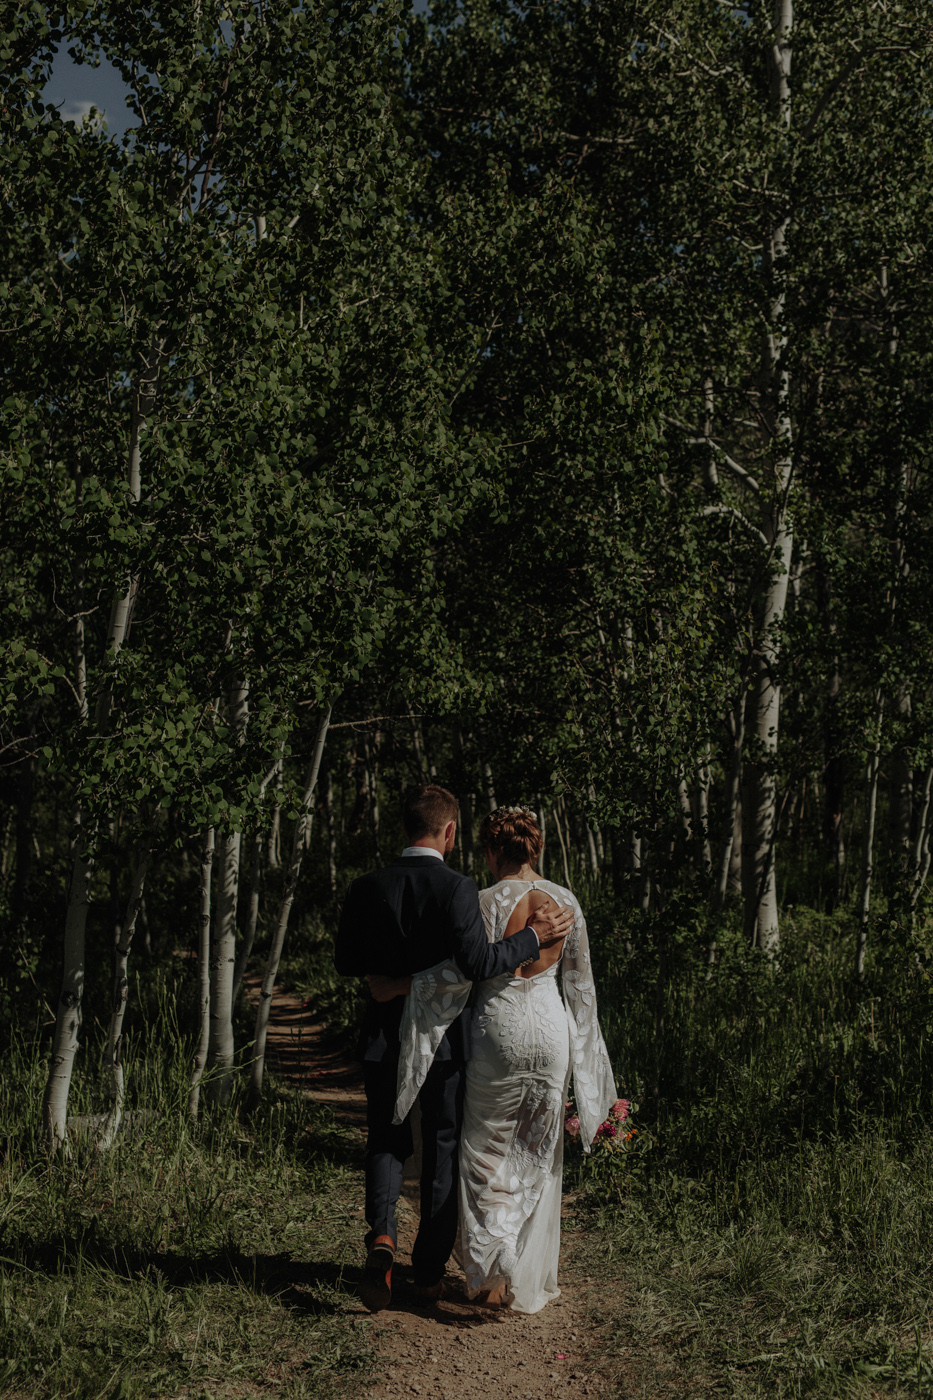 woods-walk-trail-crested-butte-colorado-wedding-73.jpg